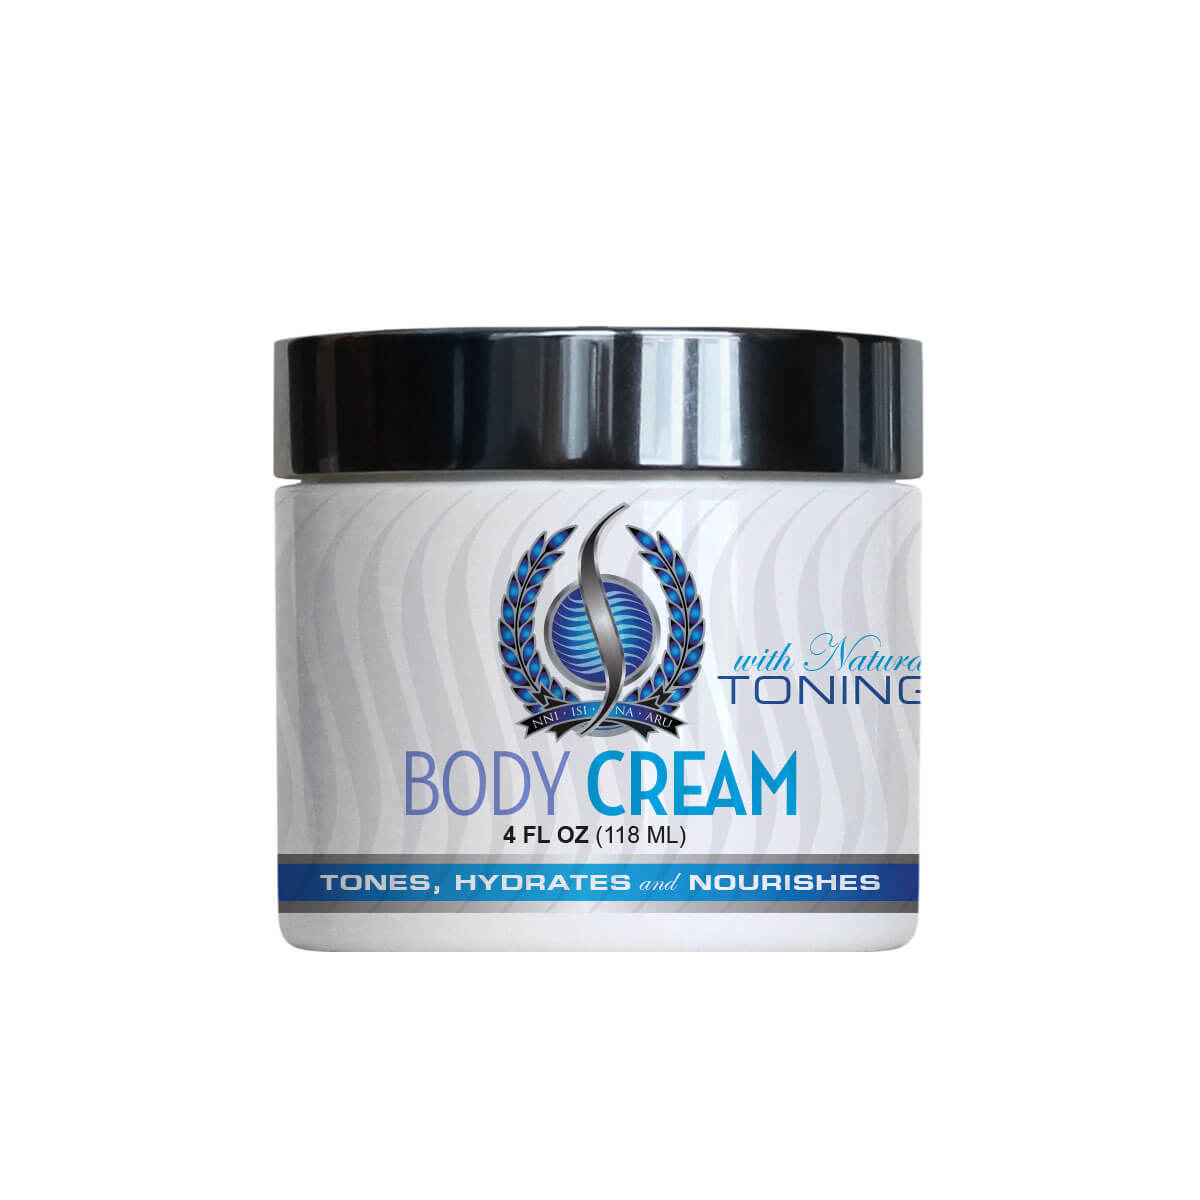 Body cream - Winter drynes| Latcosmic